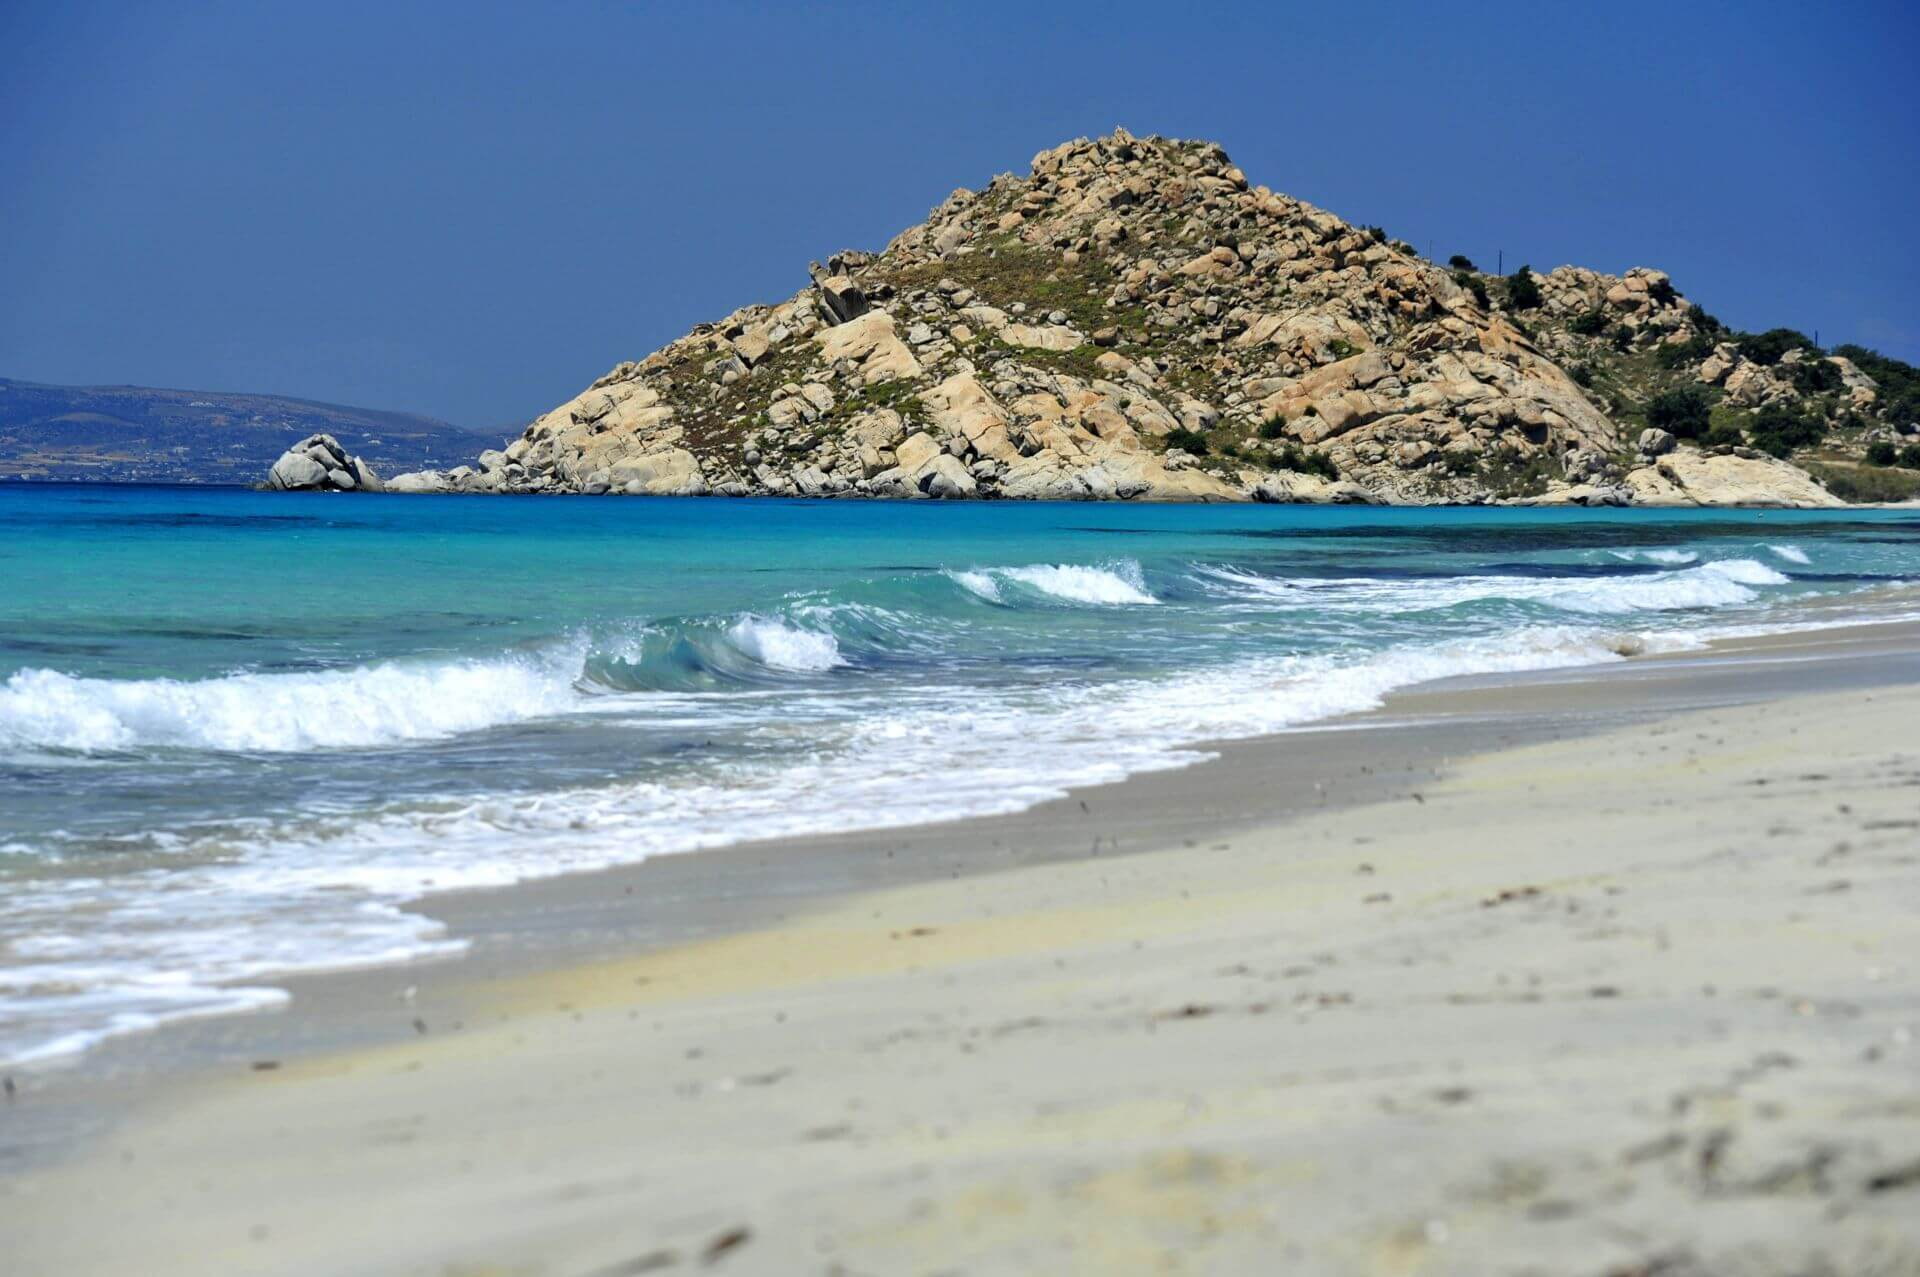 Cyclades: The beach of Mikri Vigla in Naxos